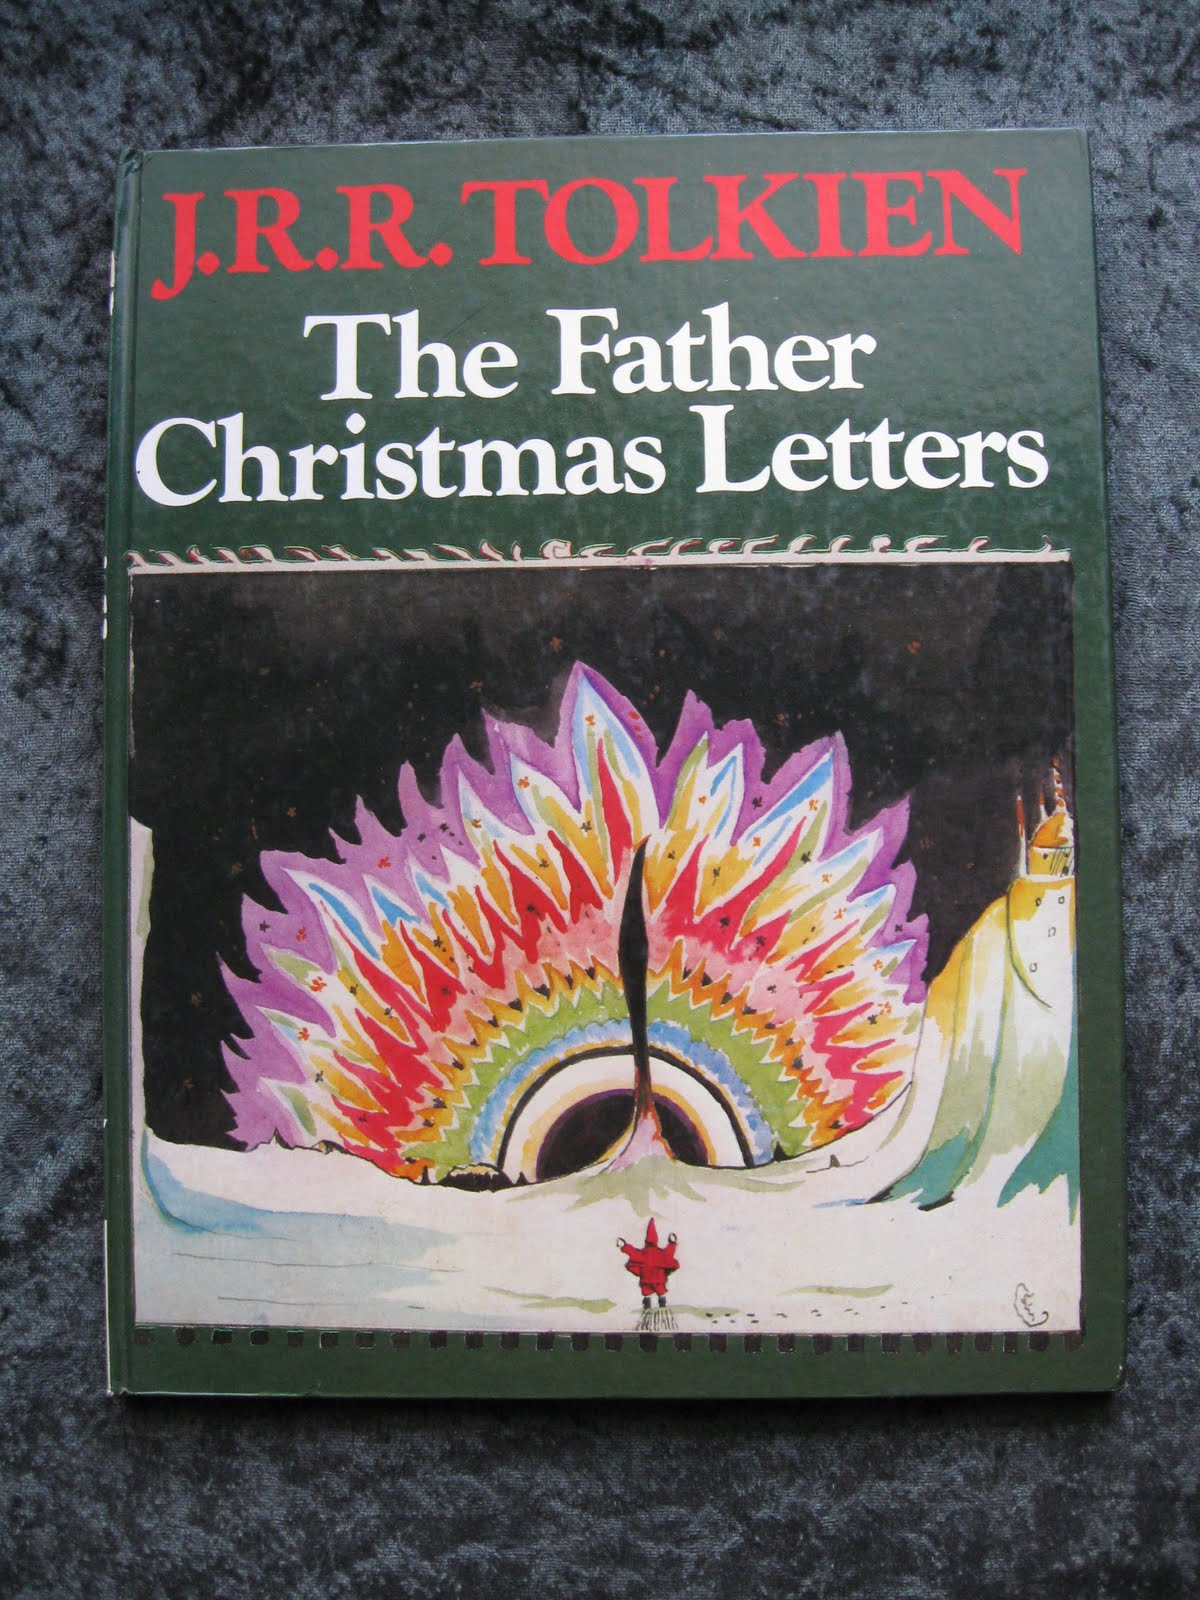 Christmas reading letters from father christmas by jrr tolkien tolkien cover spiritdancerdesigns Choice Image